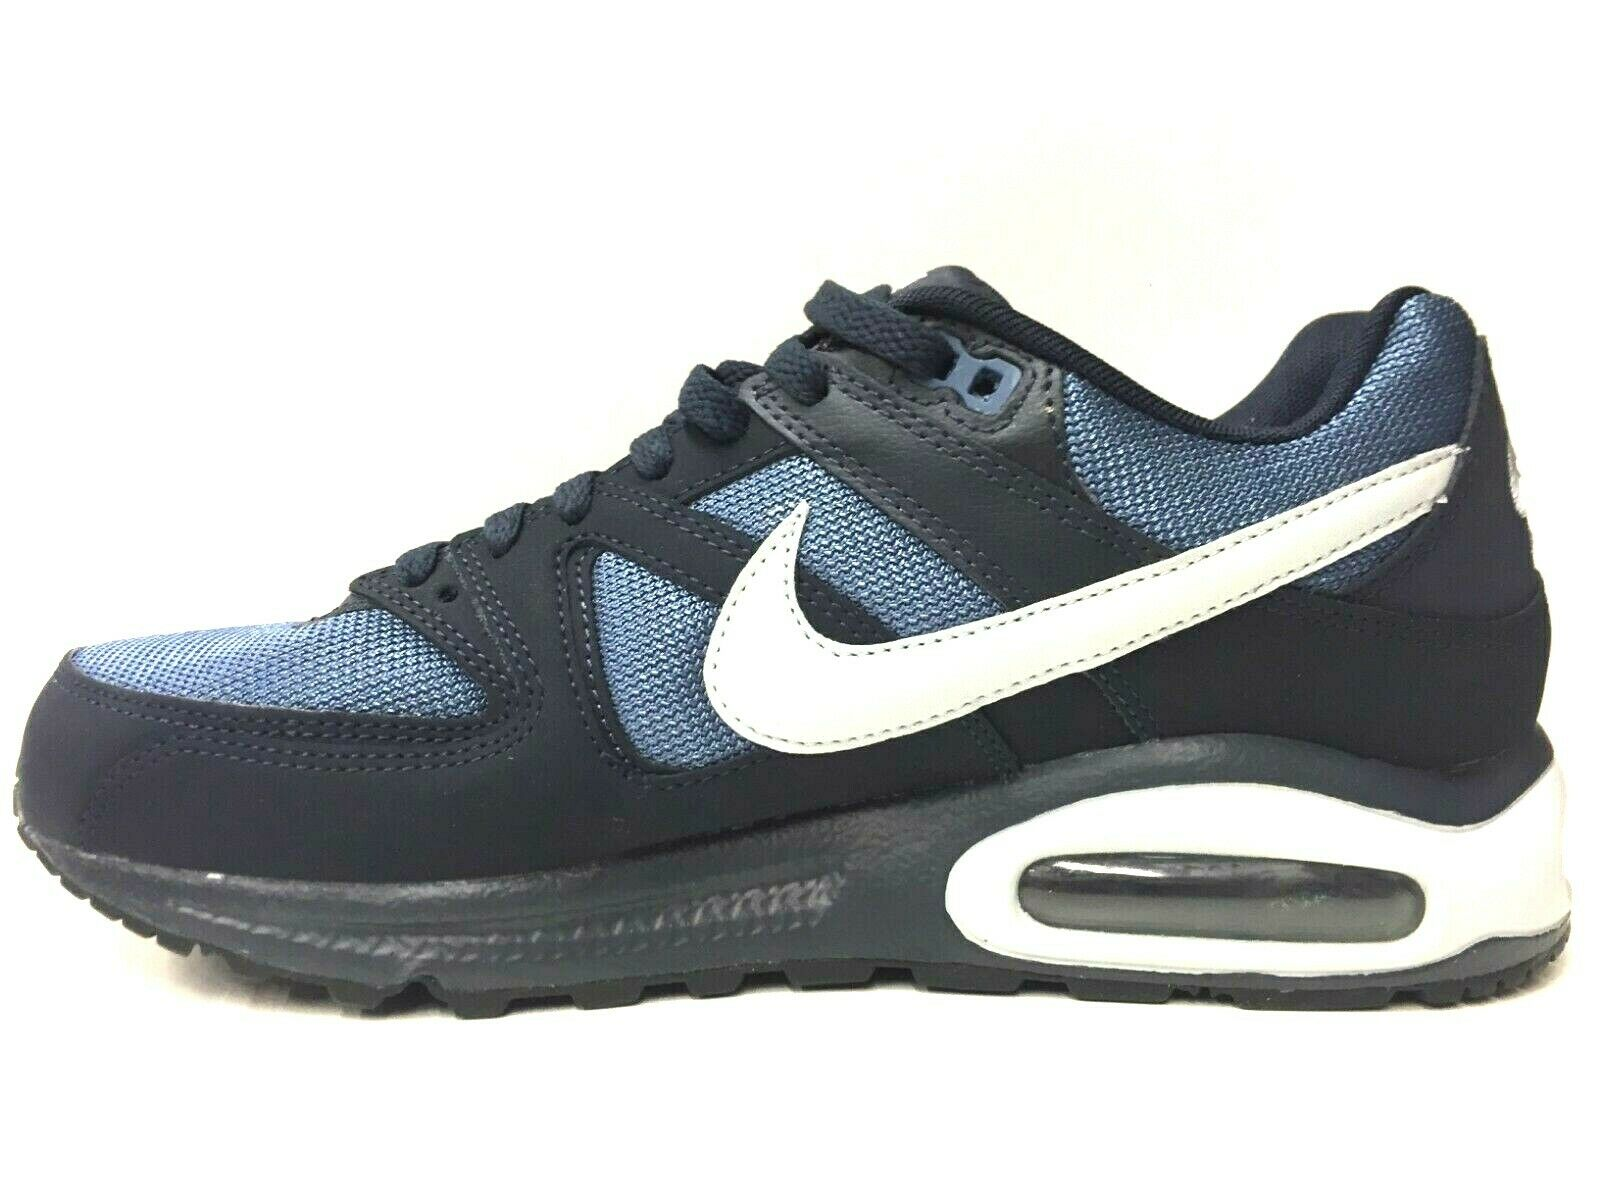 Details about Nike Shoes Sneakers Man Original Air Max Command 629993 400 EP Skin NEW show original title